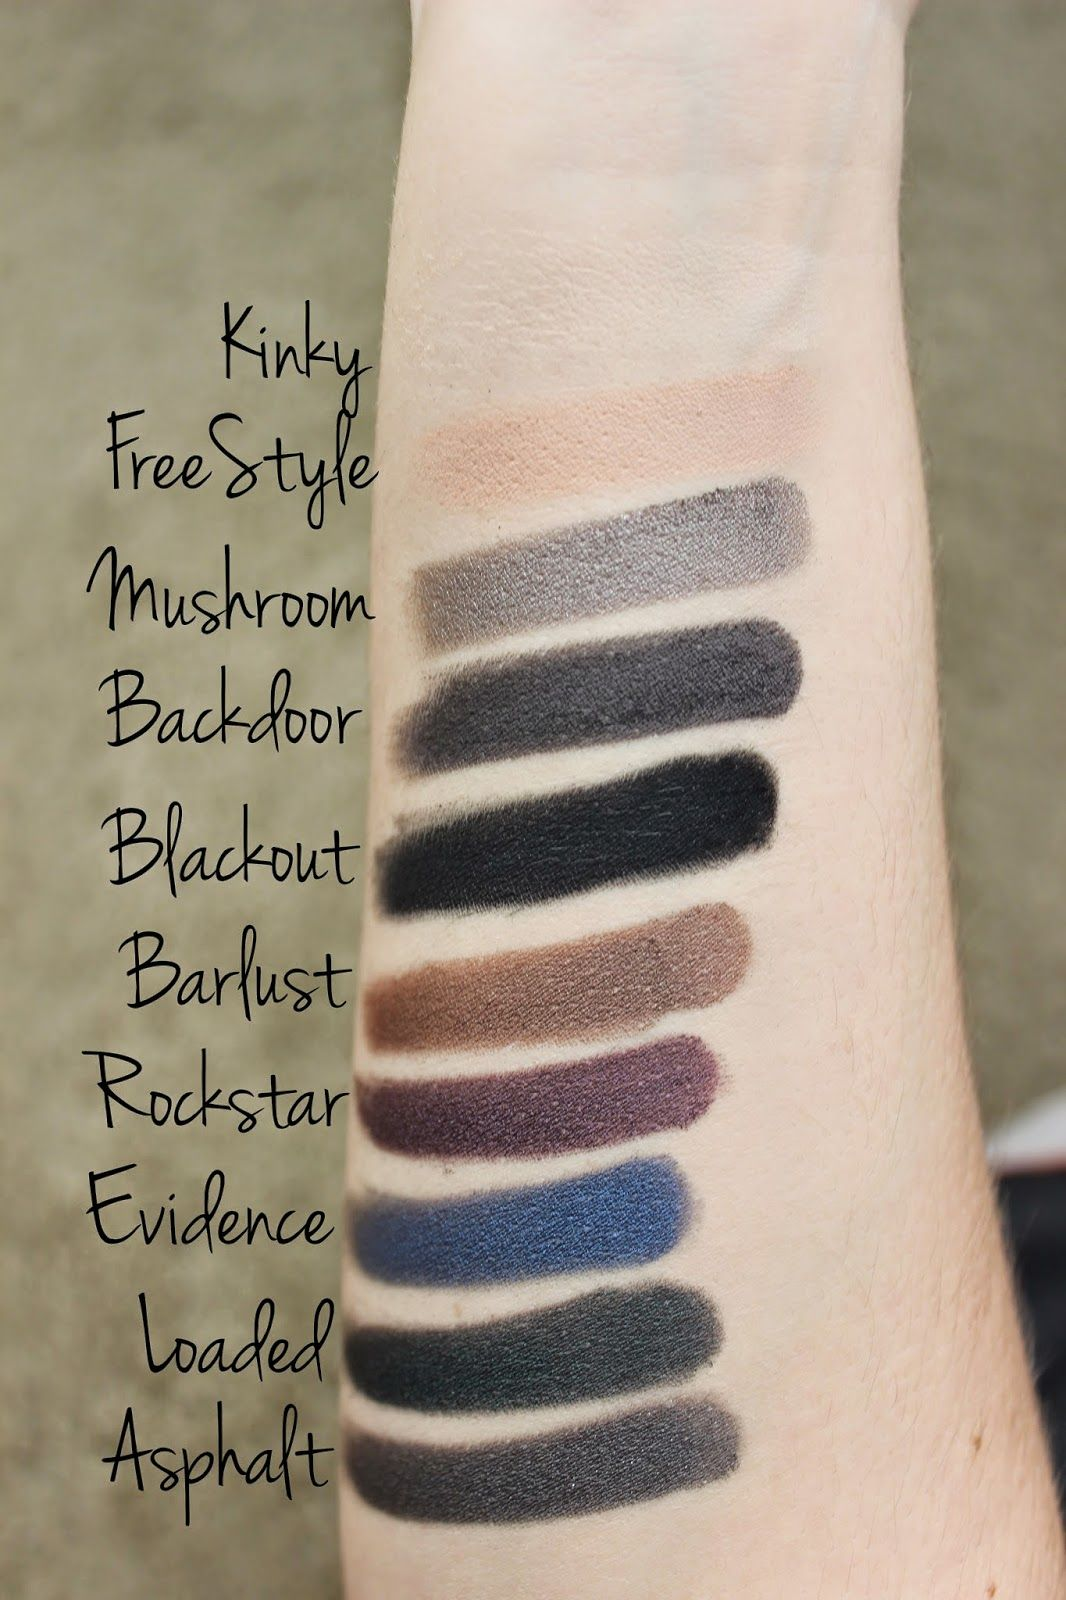 Smoked Eyeshadow Palette by Urban Decay #8